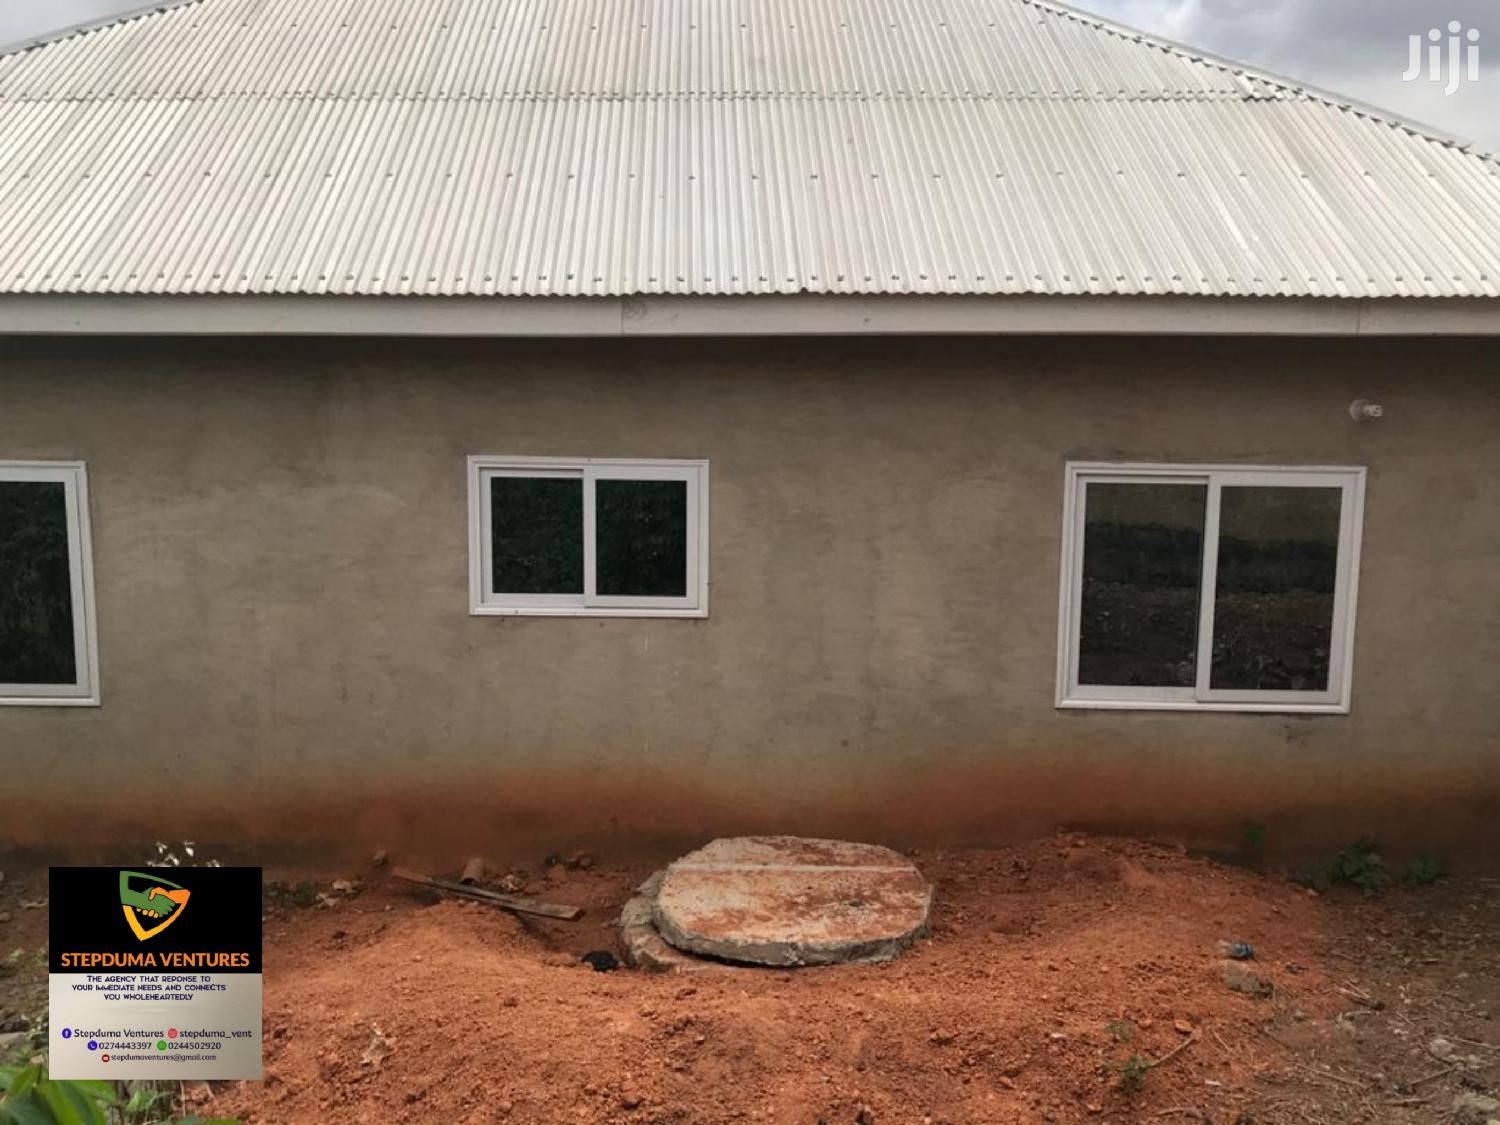 4 Bedroom House For Sale | Houses & Apartments For Sale for sale in Kumasi Metropolitan, Ashanti, Ghana